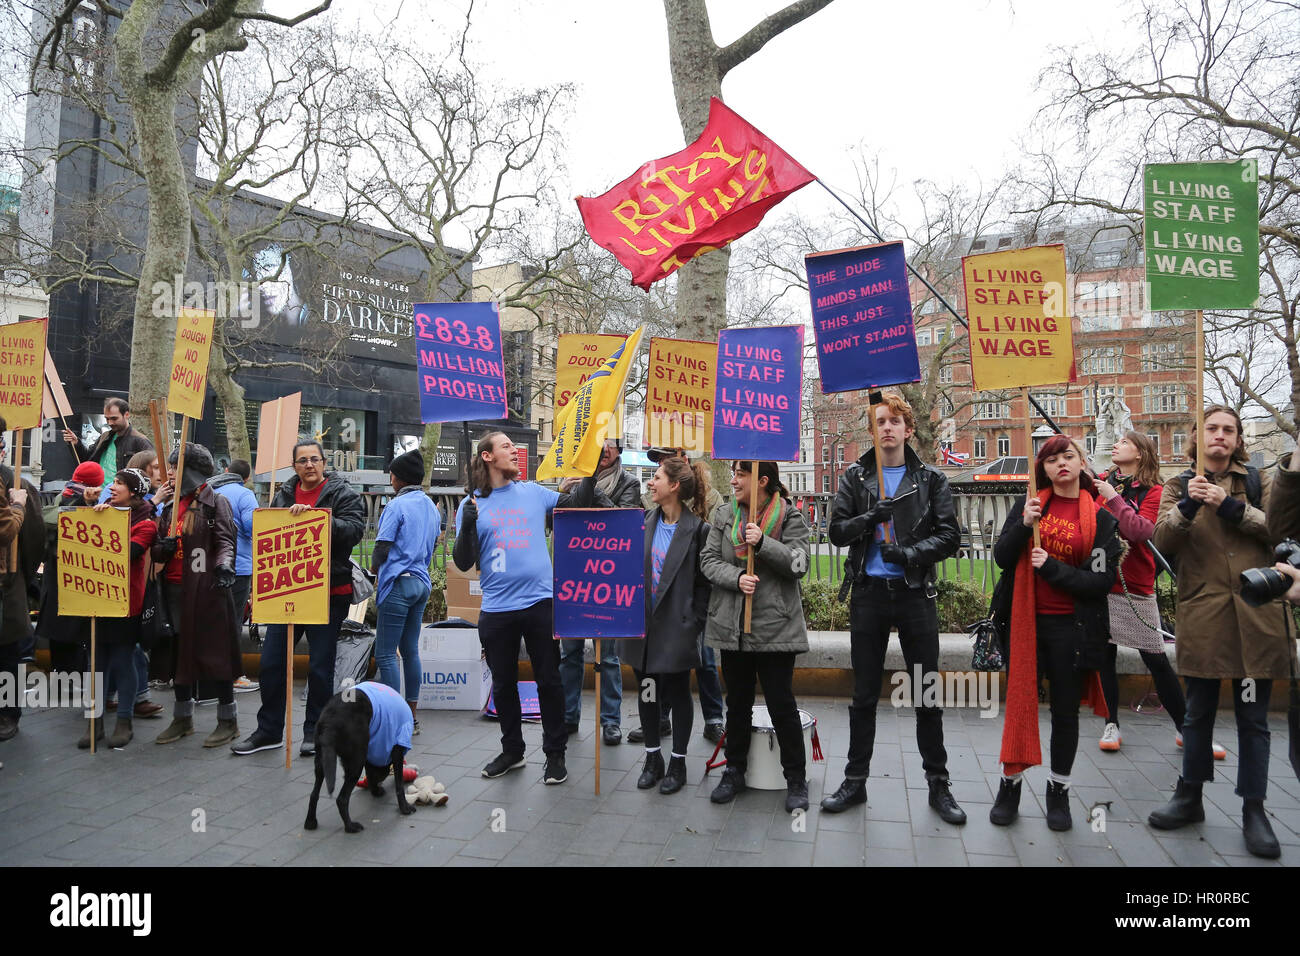 Empire Cinema, Leicester Square, London. UK 25 Feb 2017. Empire Cinema Picturehouse workers walk out on strike and - Stock Image